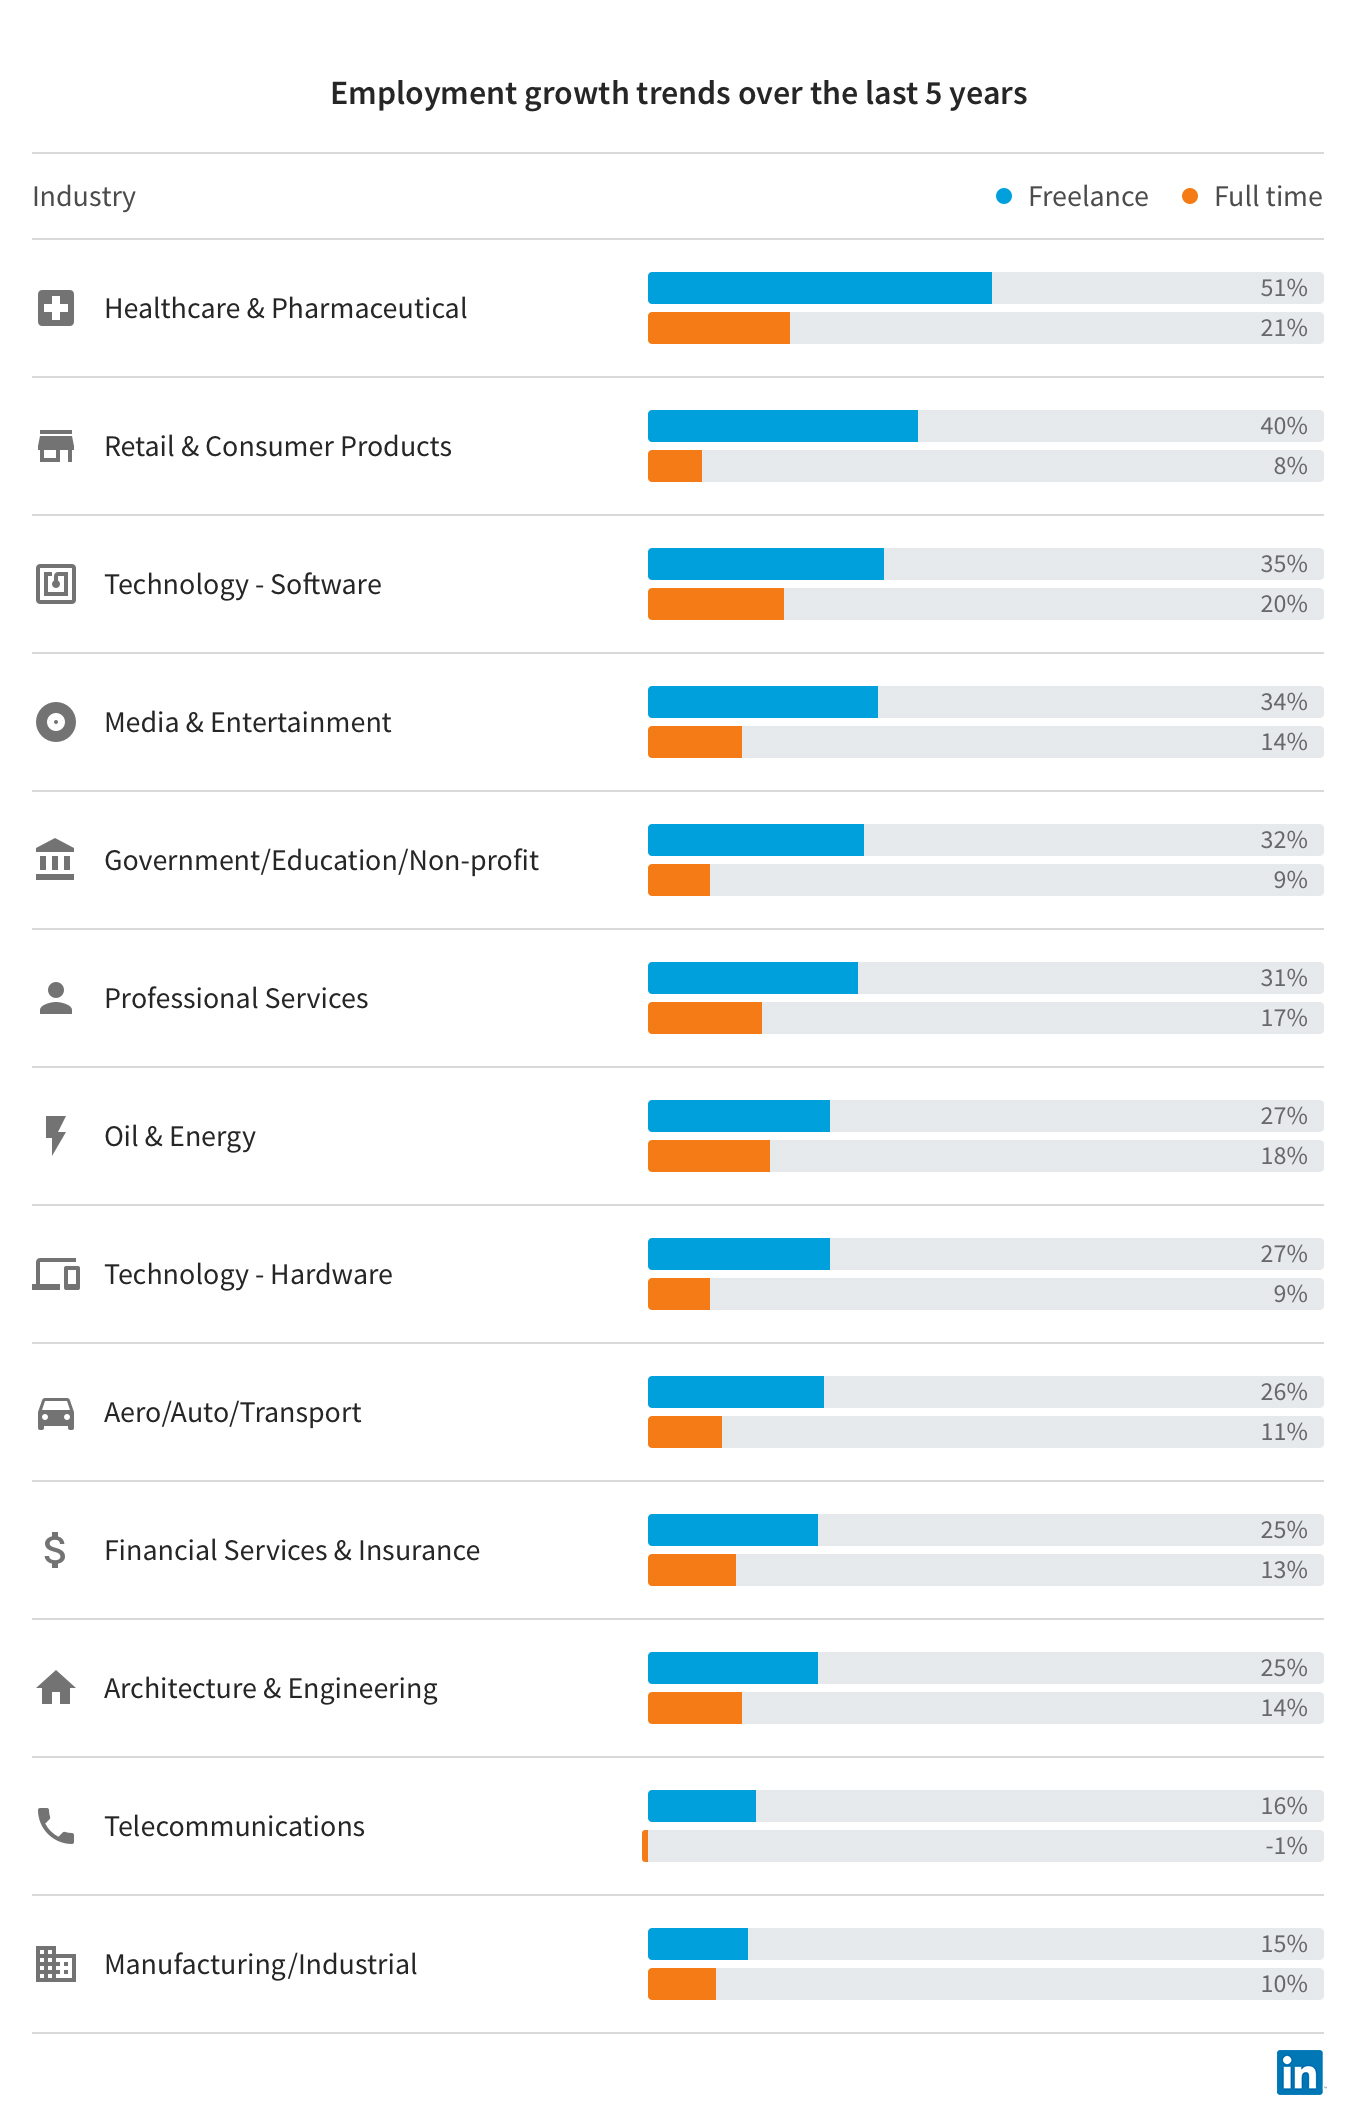 LinkedIn Expands Freelance Marketplace, Provides New Data on Freelance Growth | Social Media Today